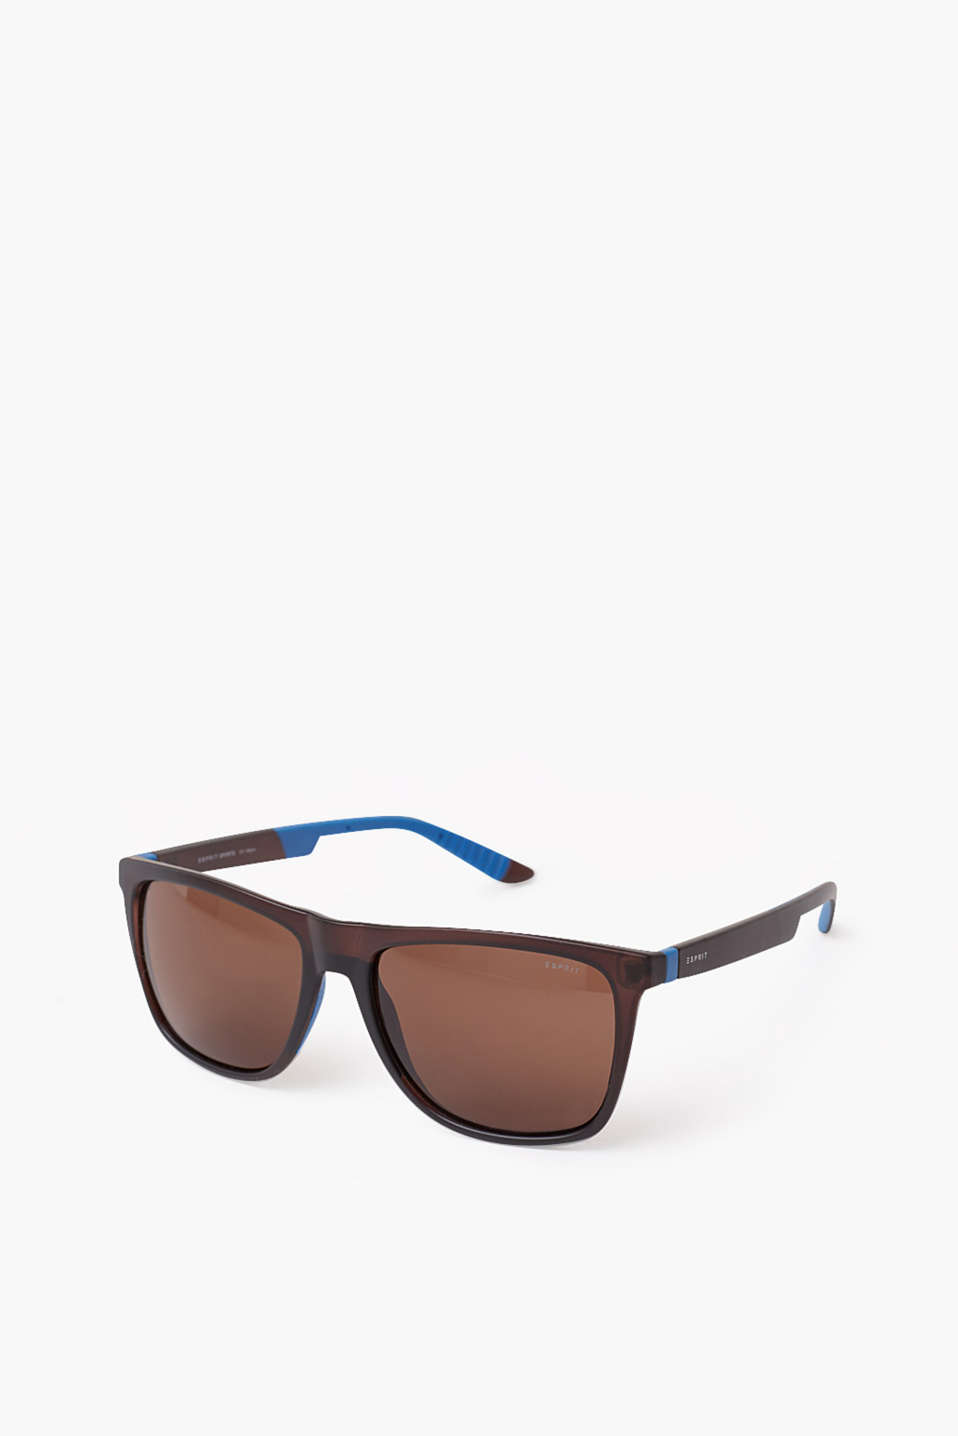 Sporty, elegant unisex sunglasses with matte temples